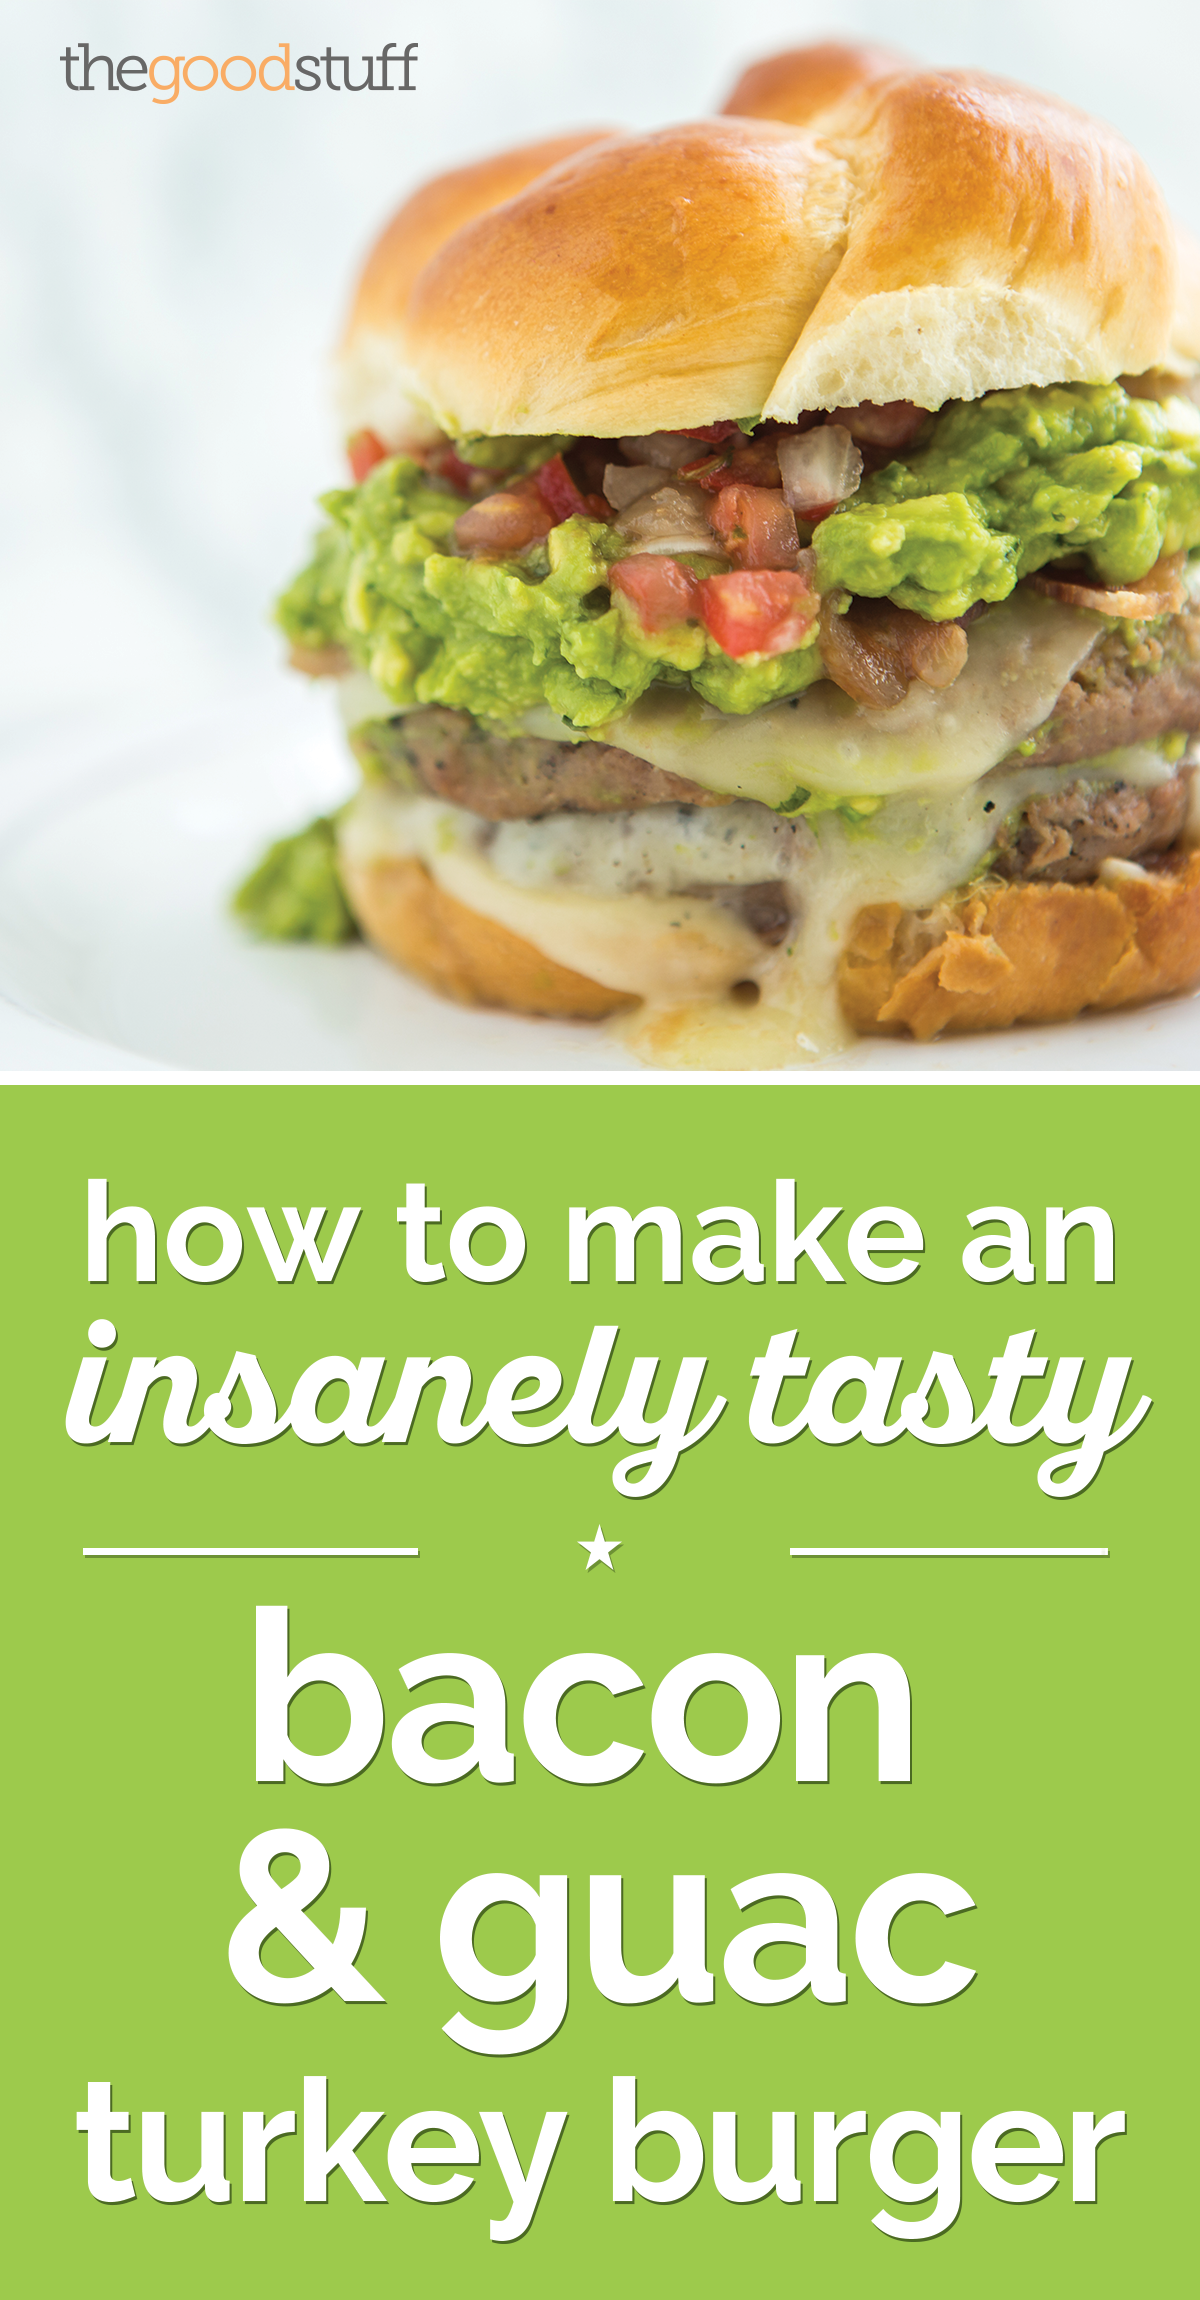 How to Make an Insanely Tasty Bacon & Guac Turkey Burger | thegoodstuff